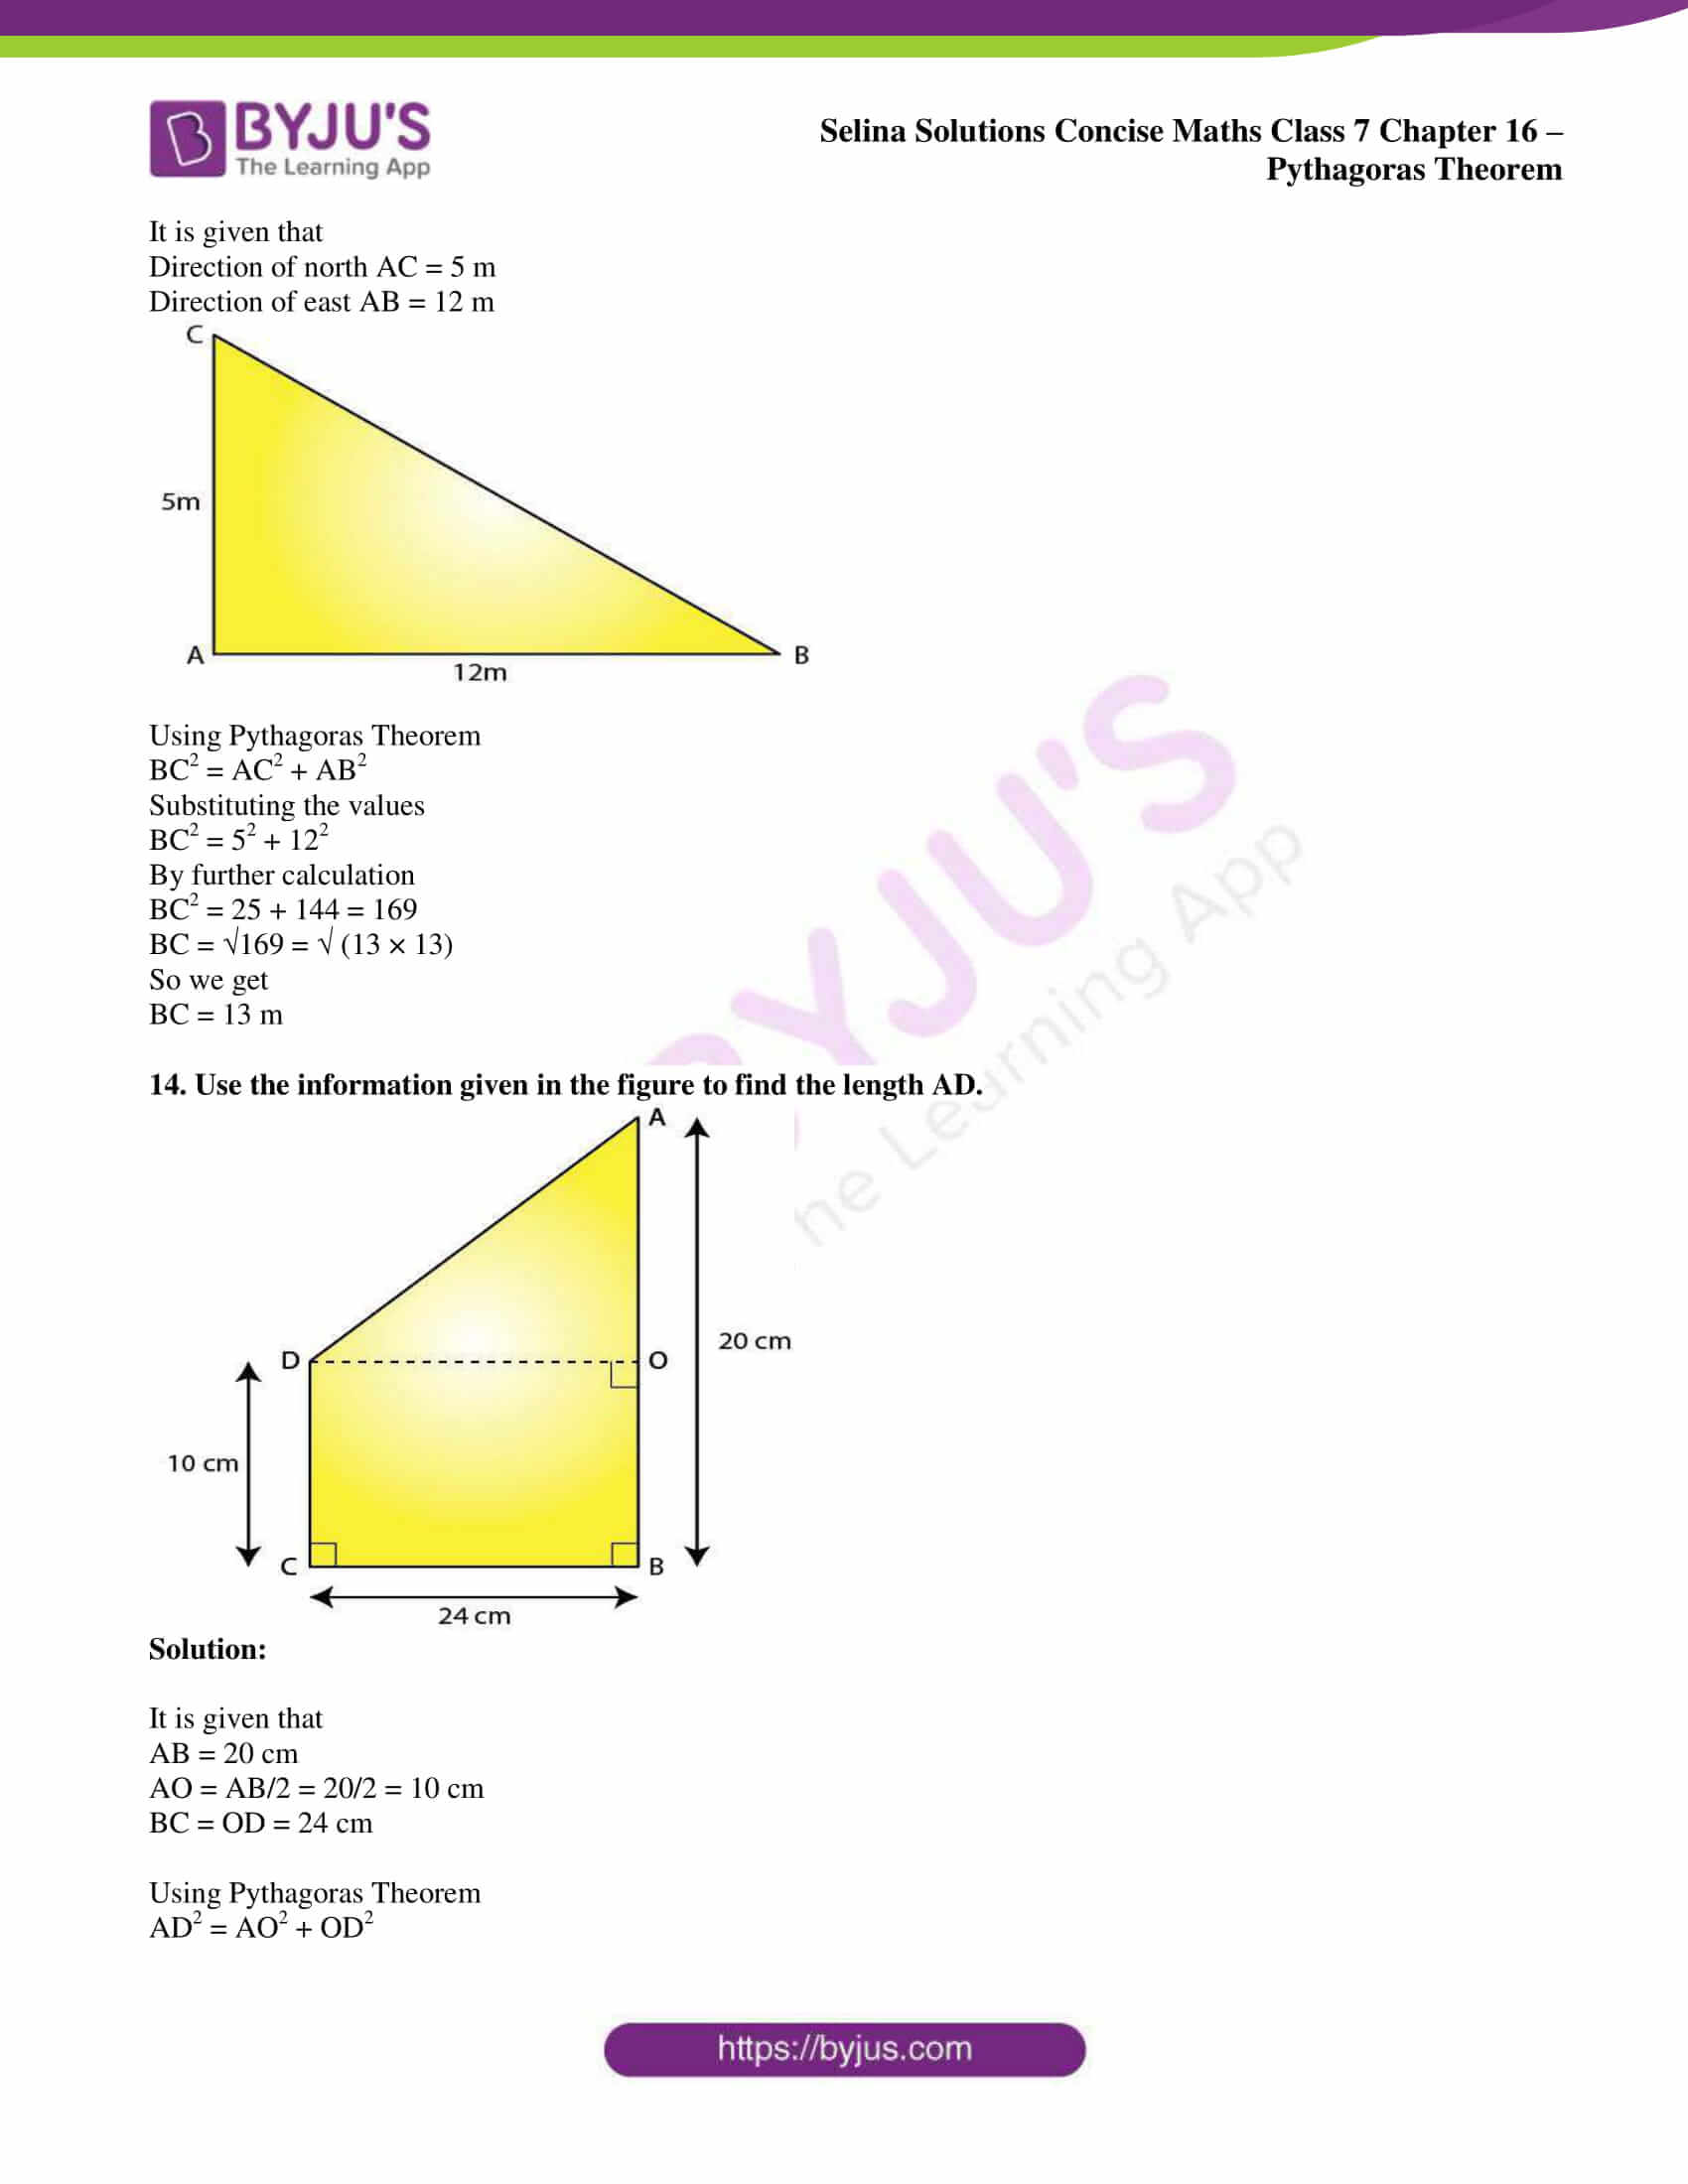 selina sol concise maths class 7 chapter 16 11